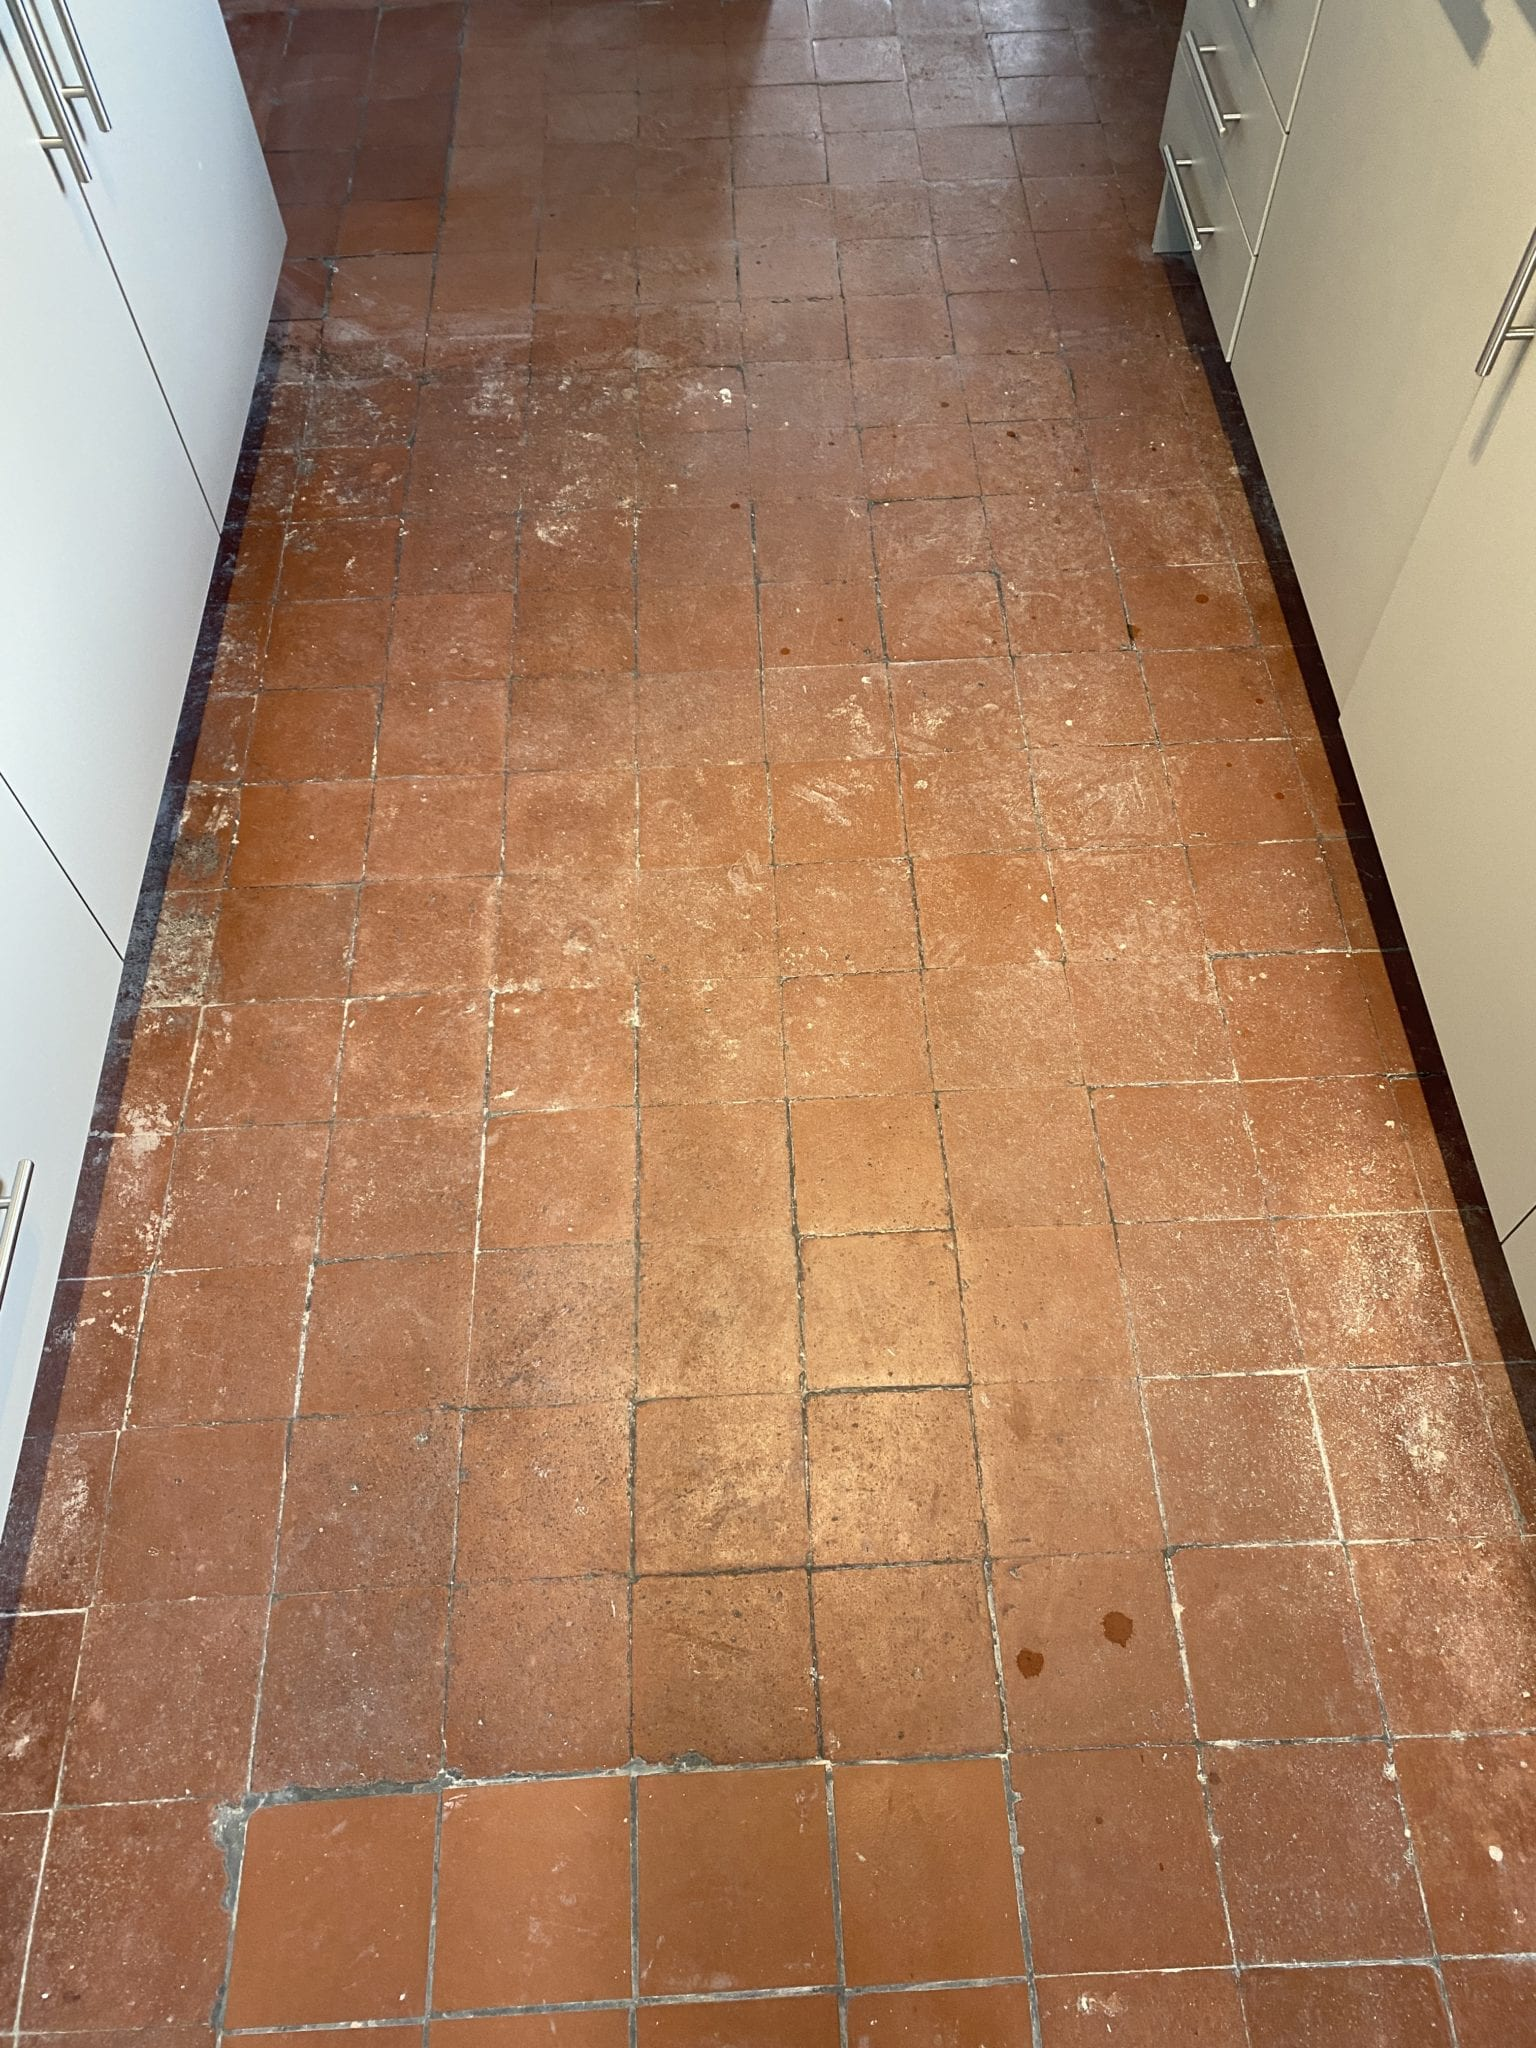 Remove white paint from quarry tiles